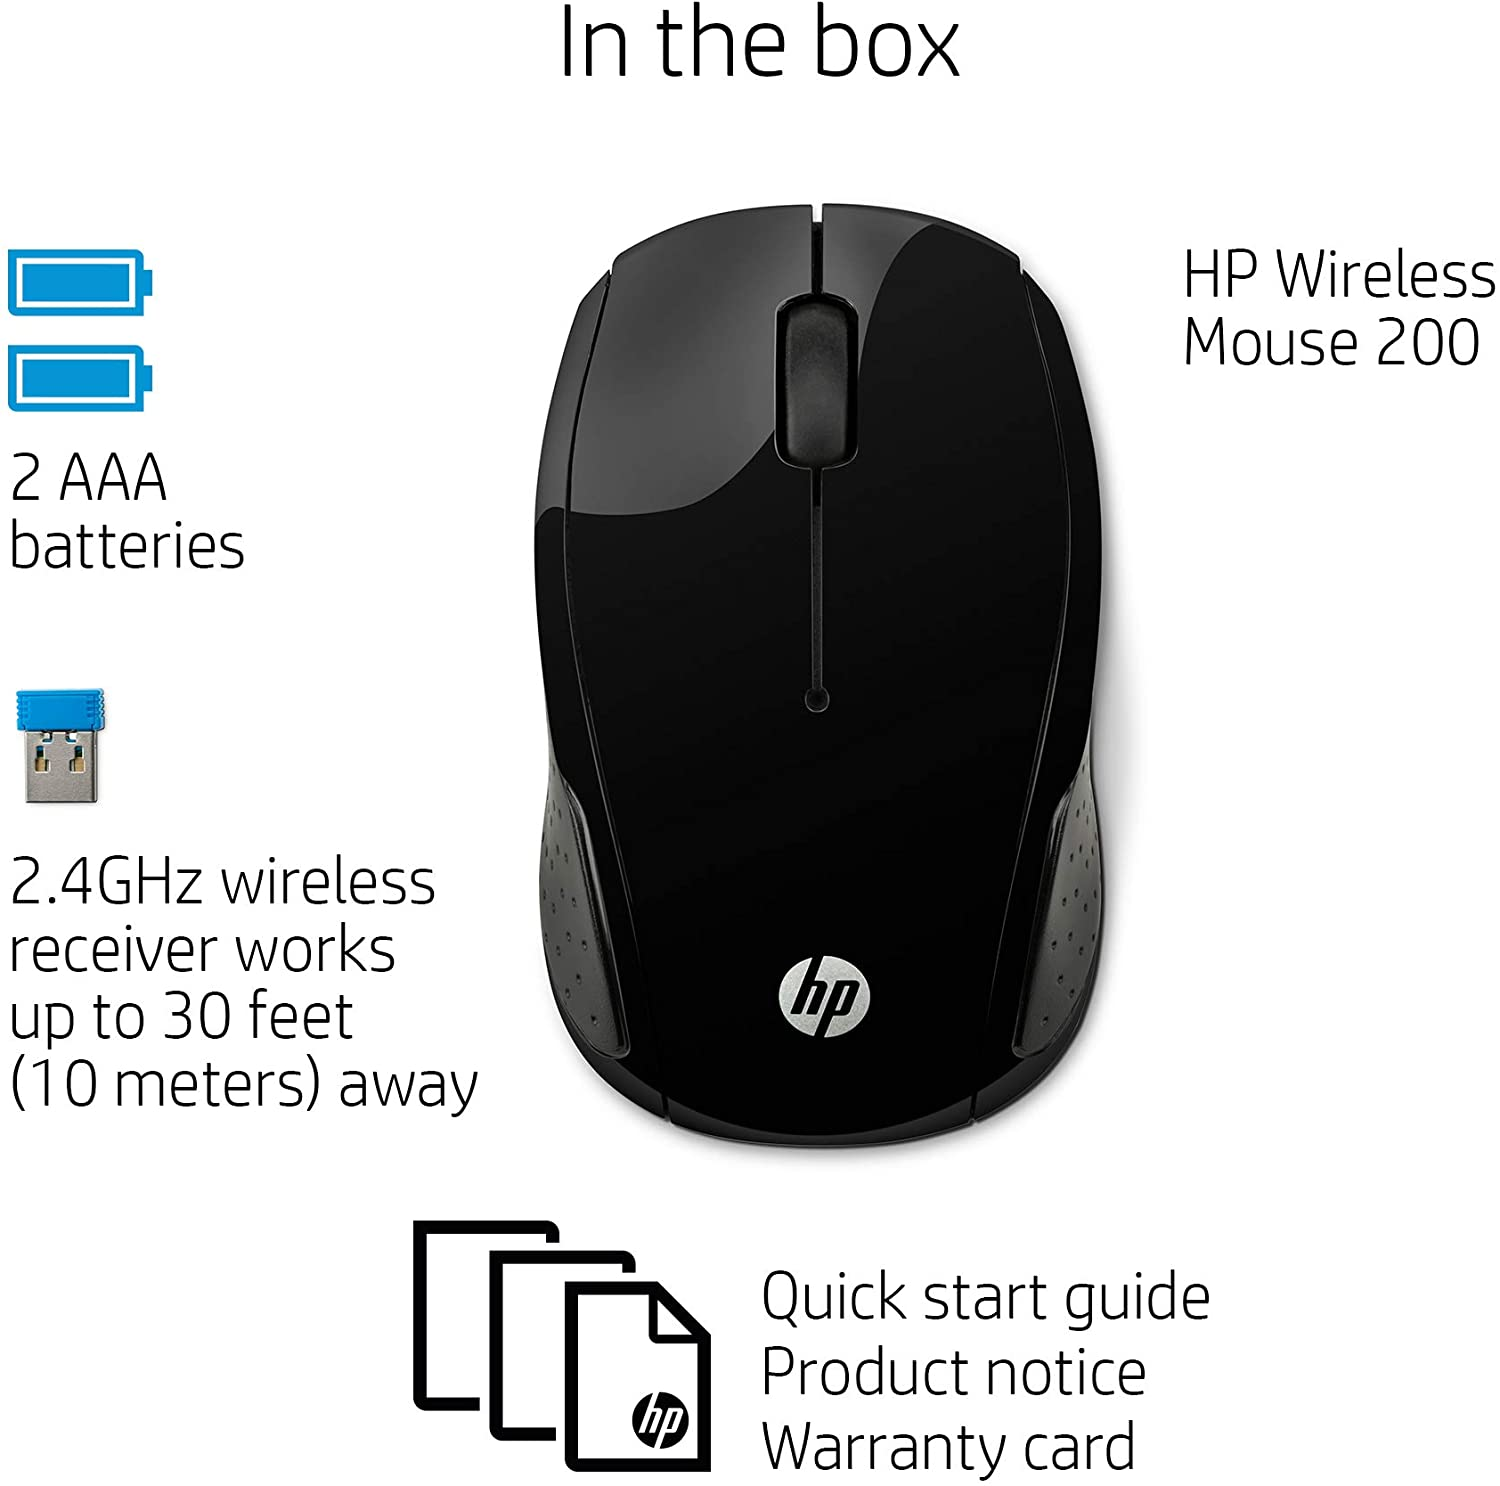 hp wireless mouse 200 2.4ghz